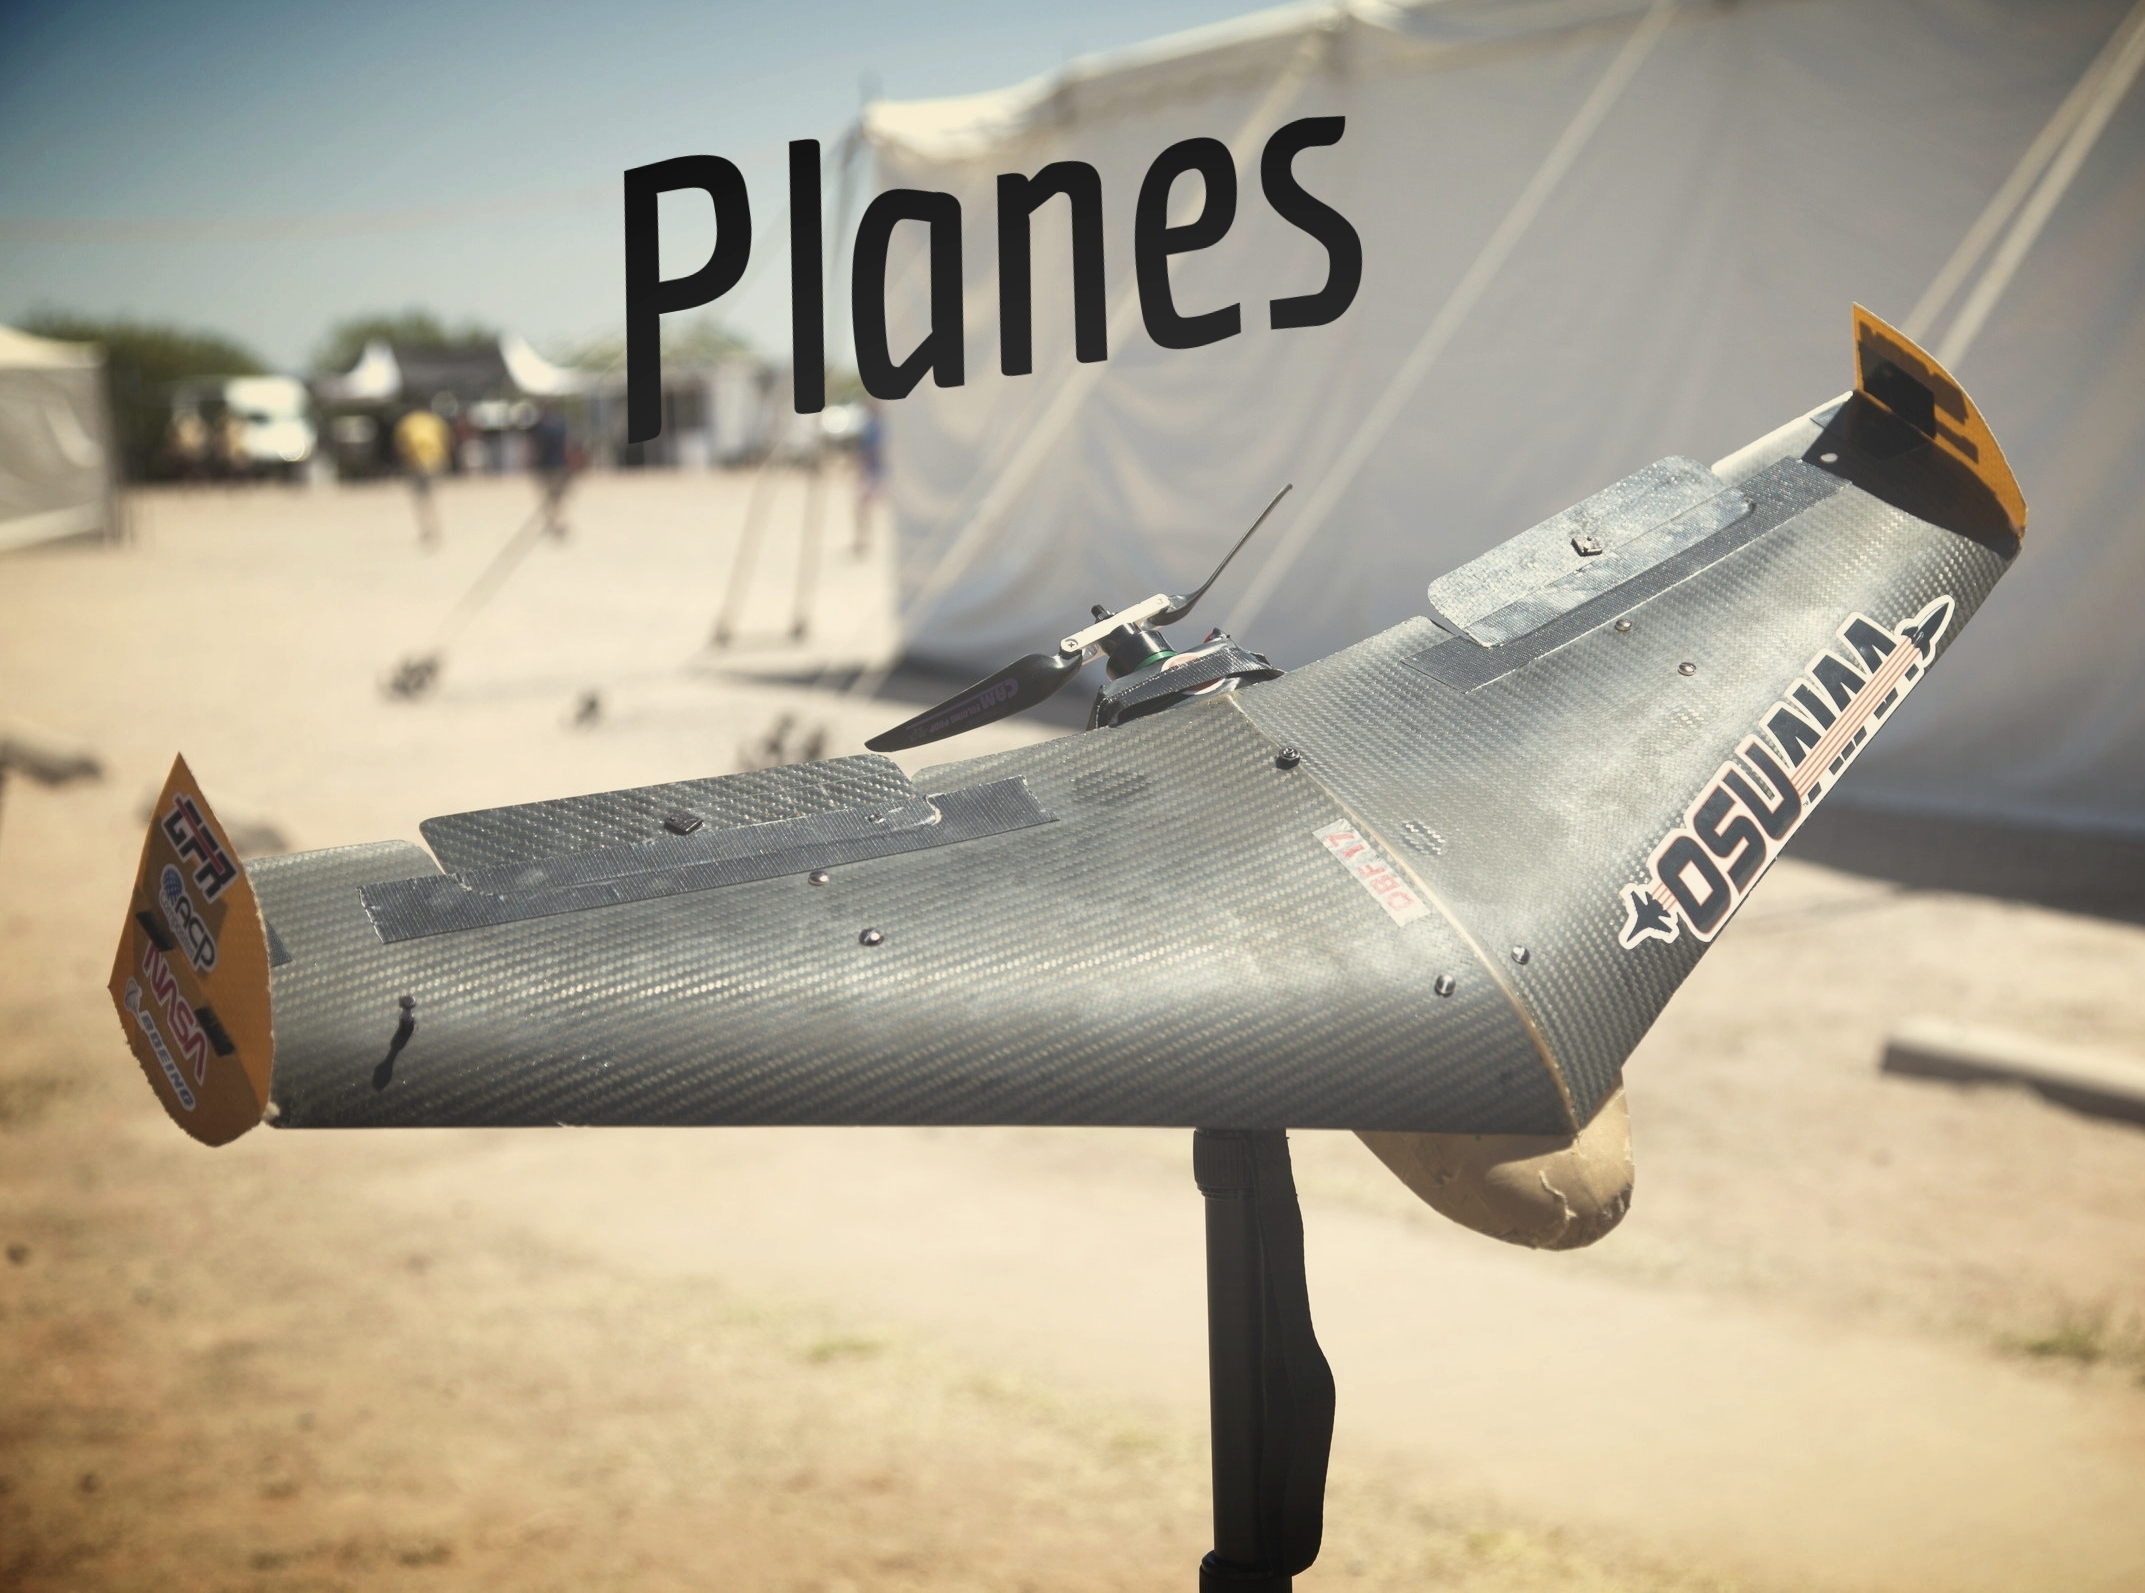 Click to learn more about   PLANE   projects!